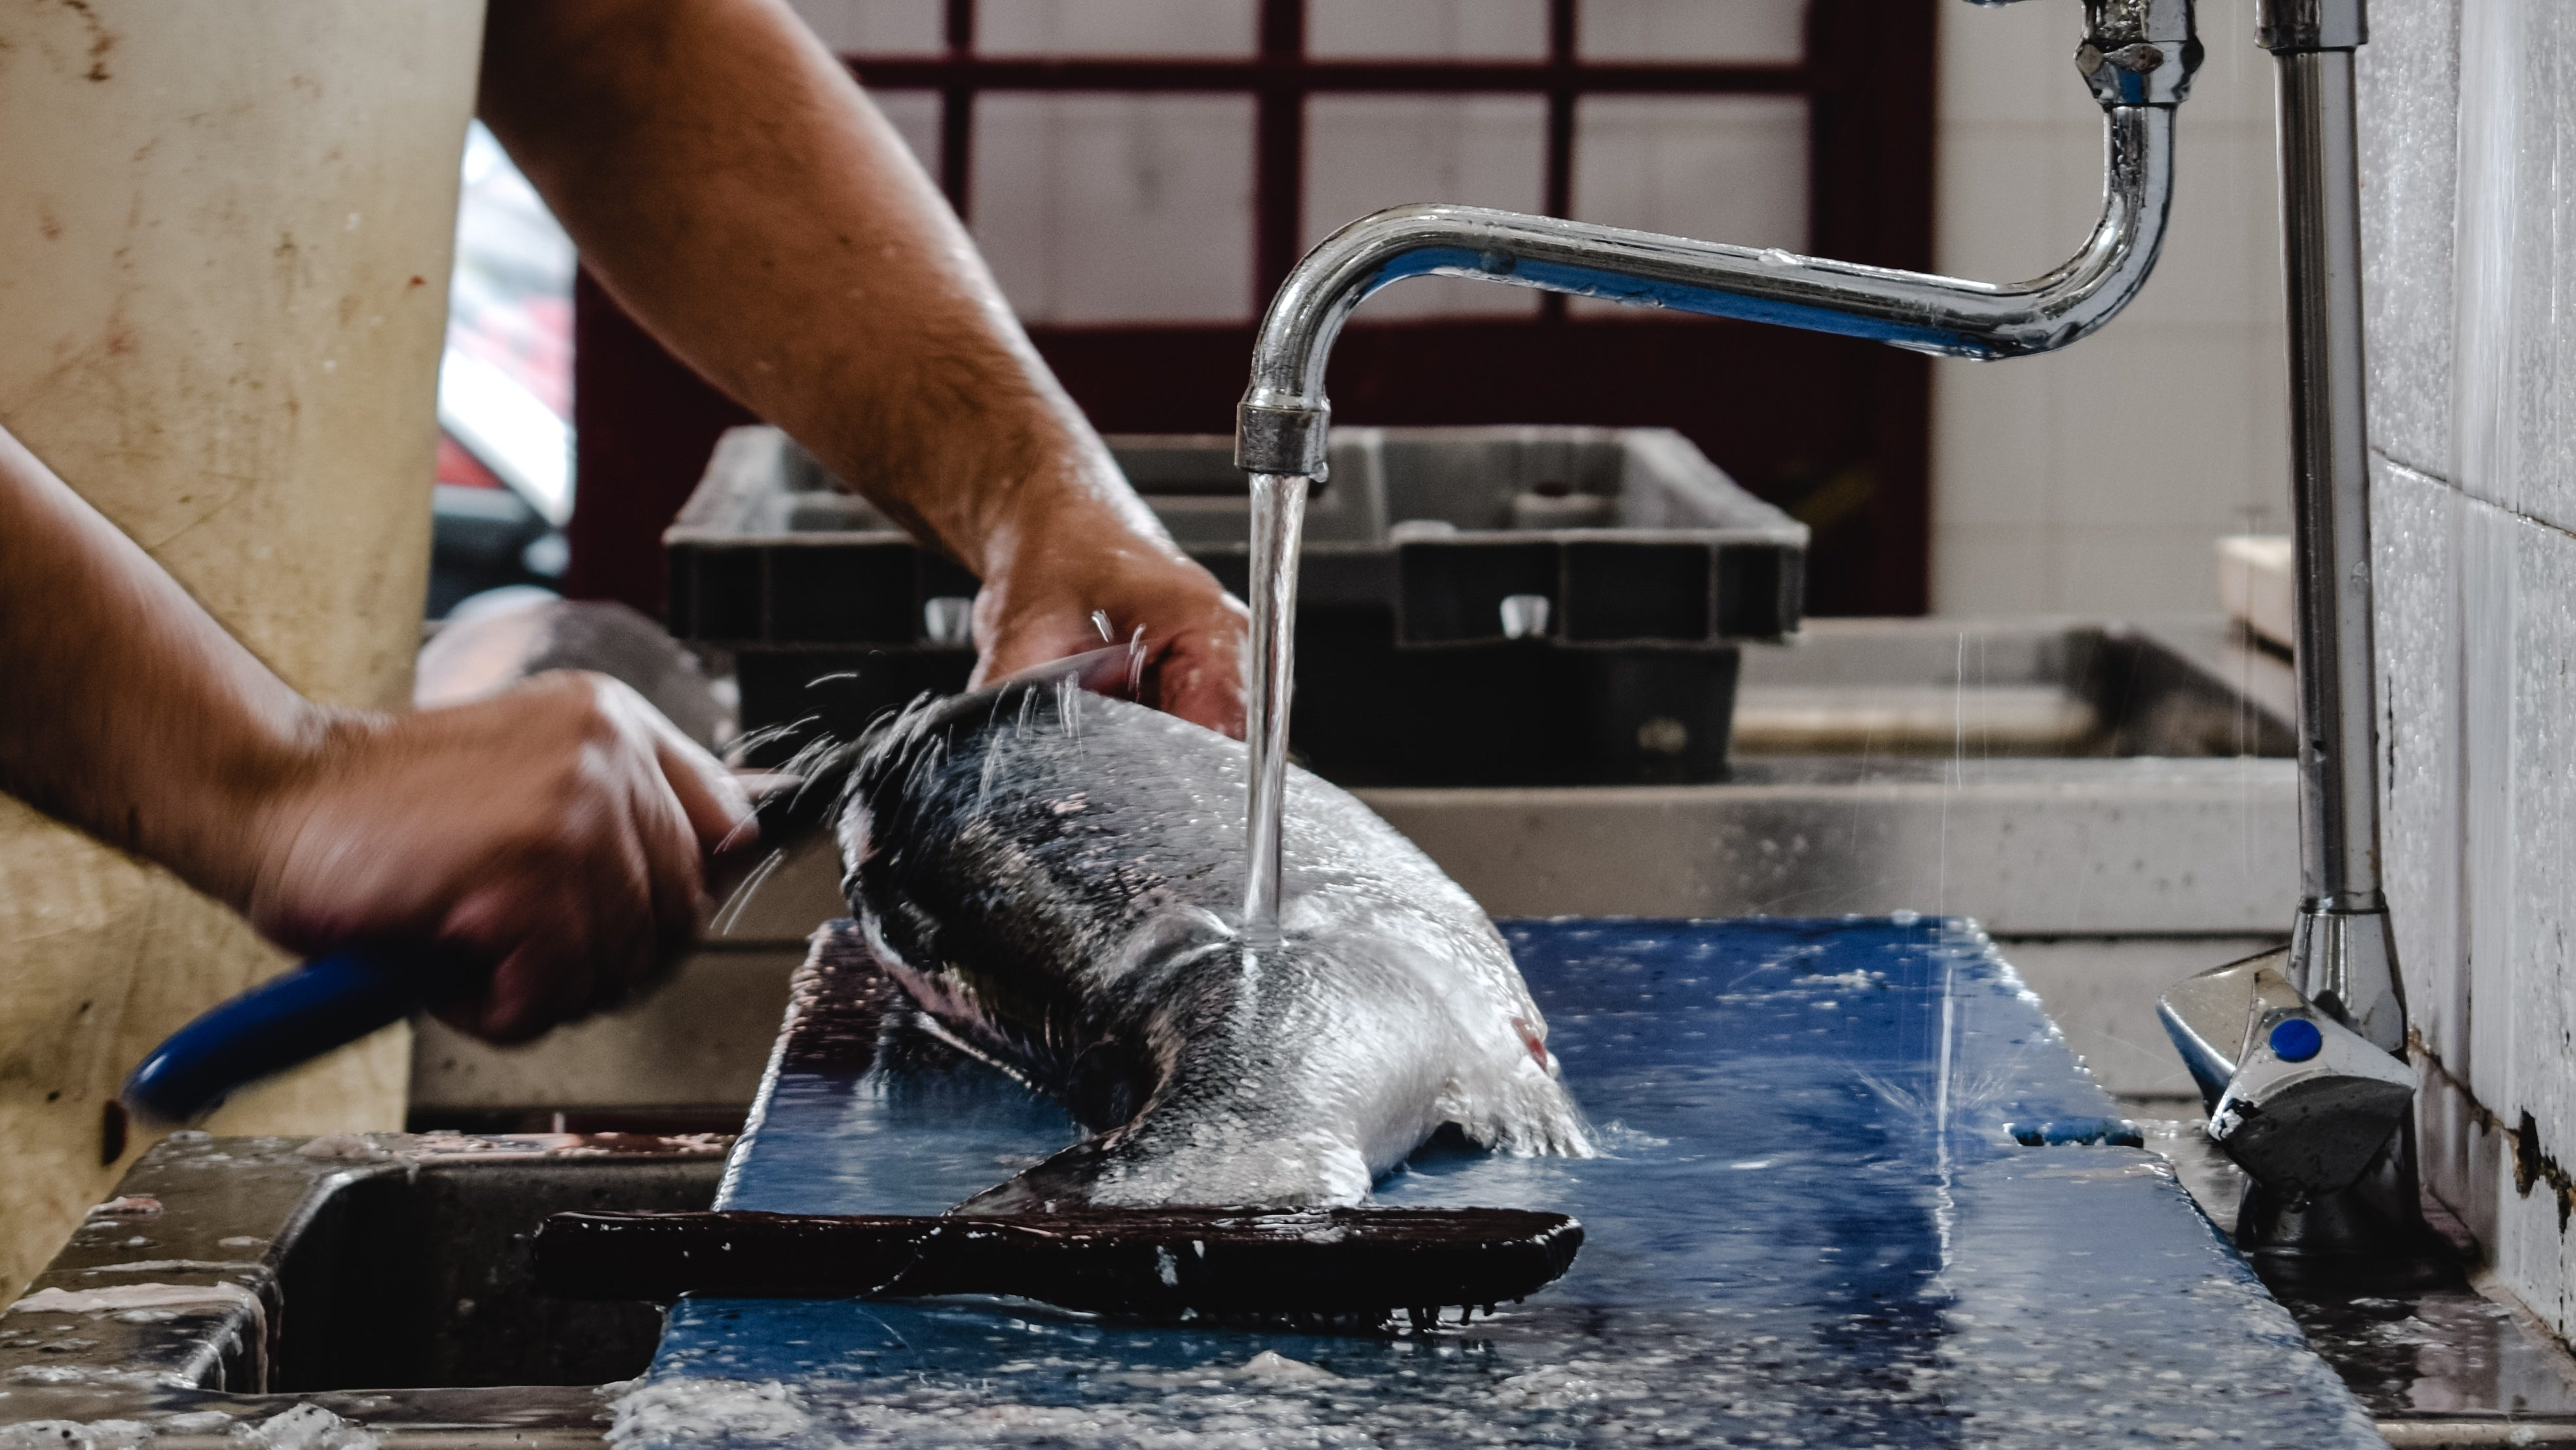 An image of a fishmonger descaling a fish with a special knife.